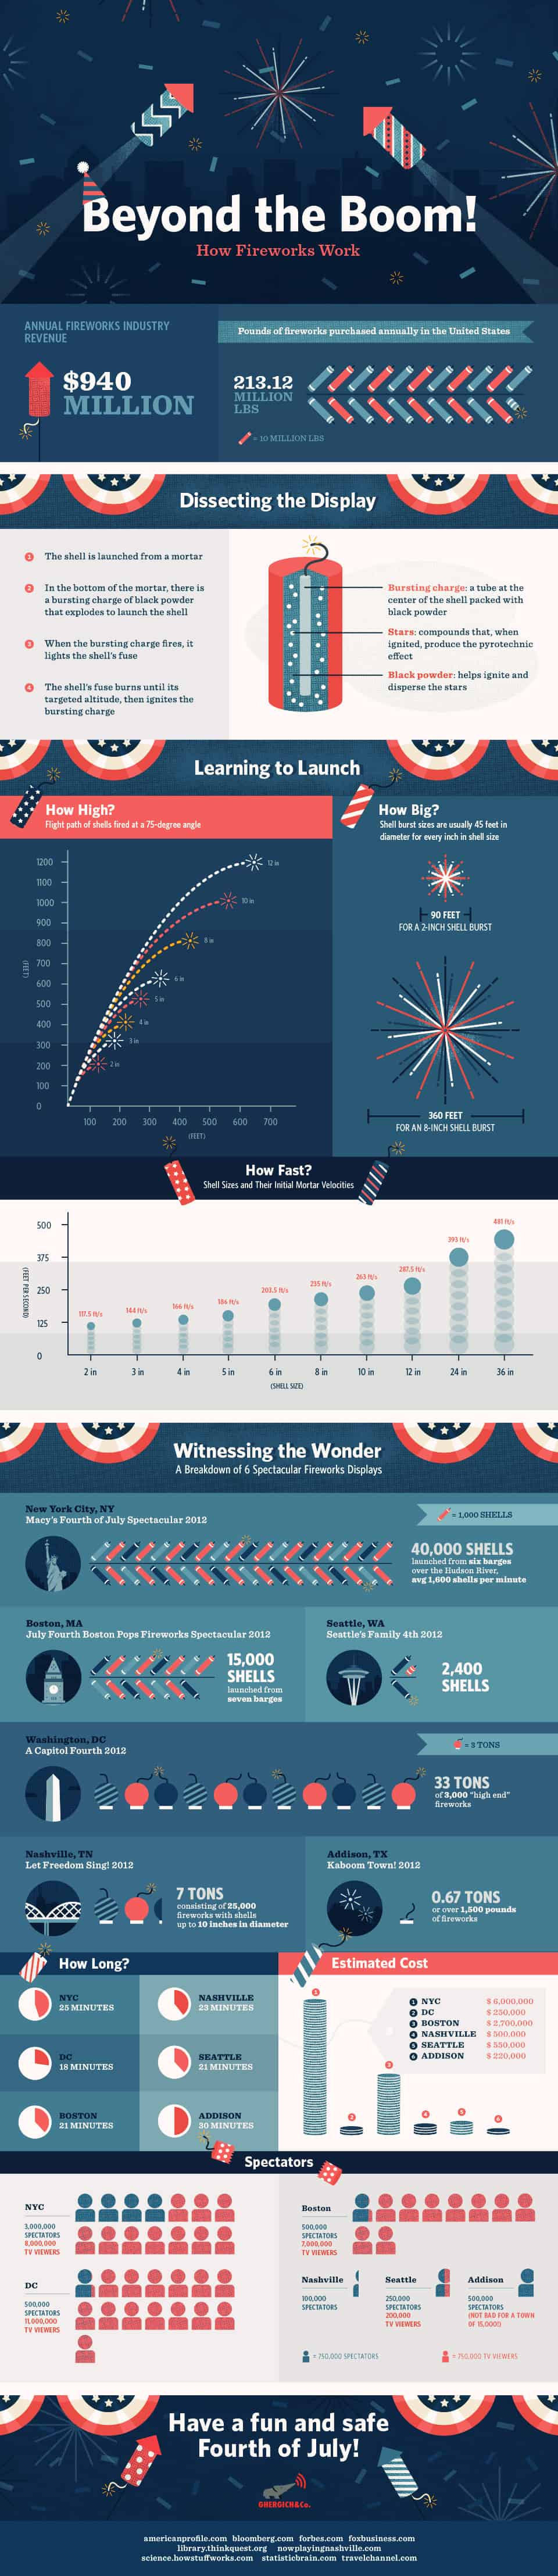 Beyond the Boom – How Fireworks Work